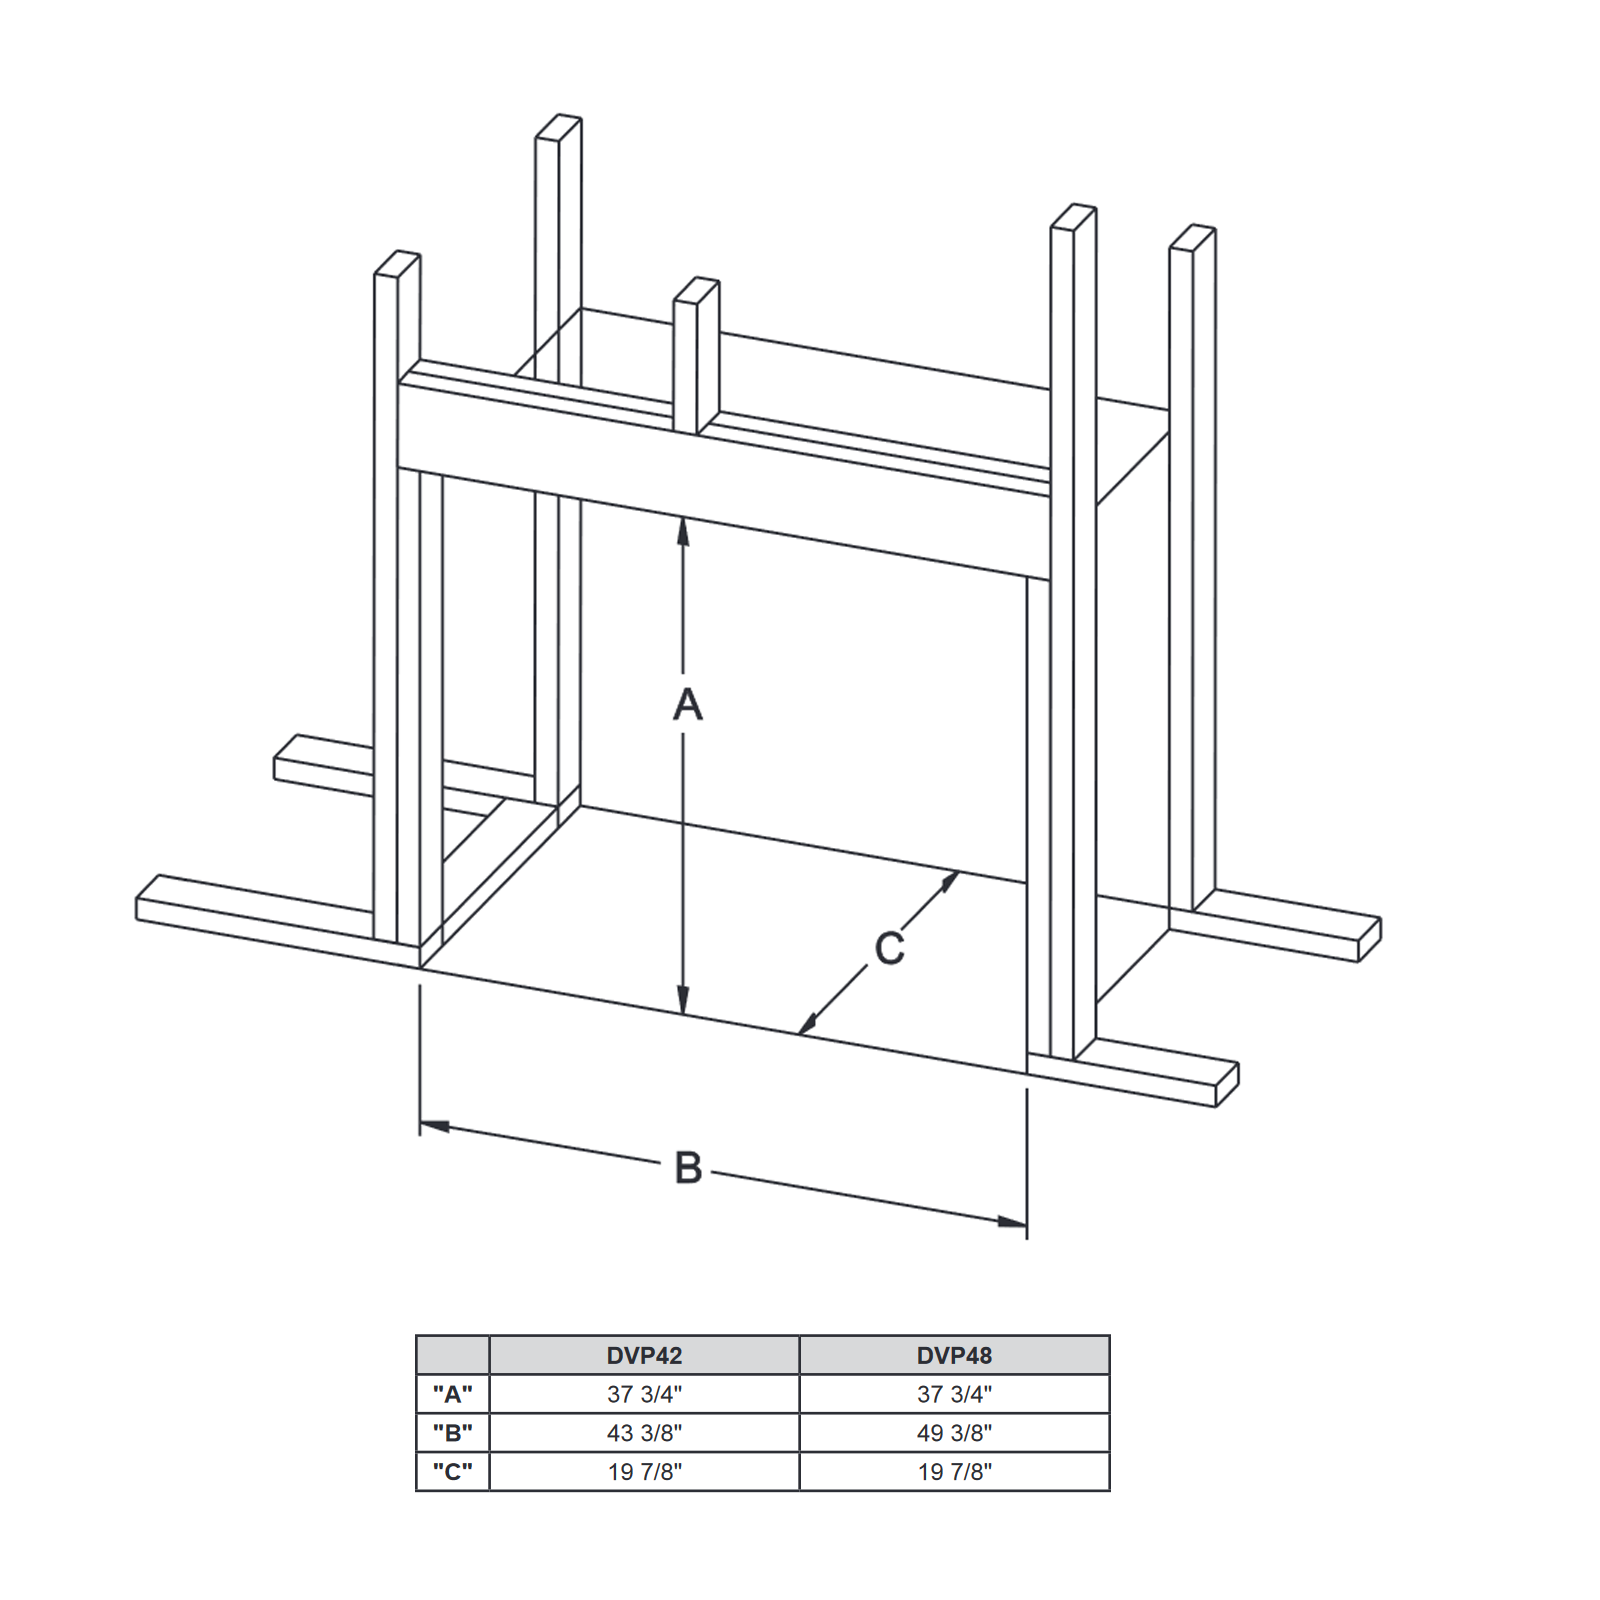 DVP42 Technical Drawing 2